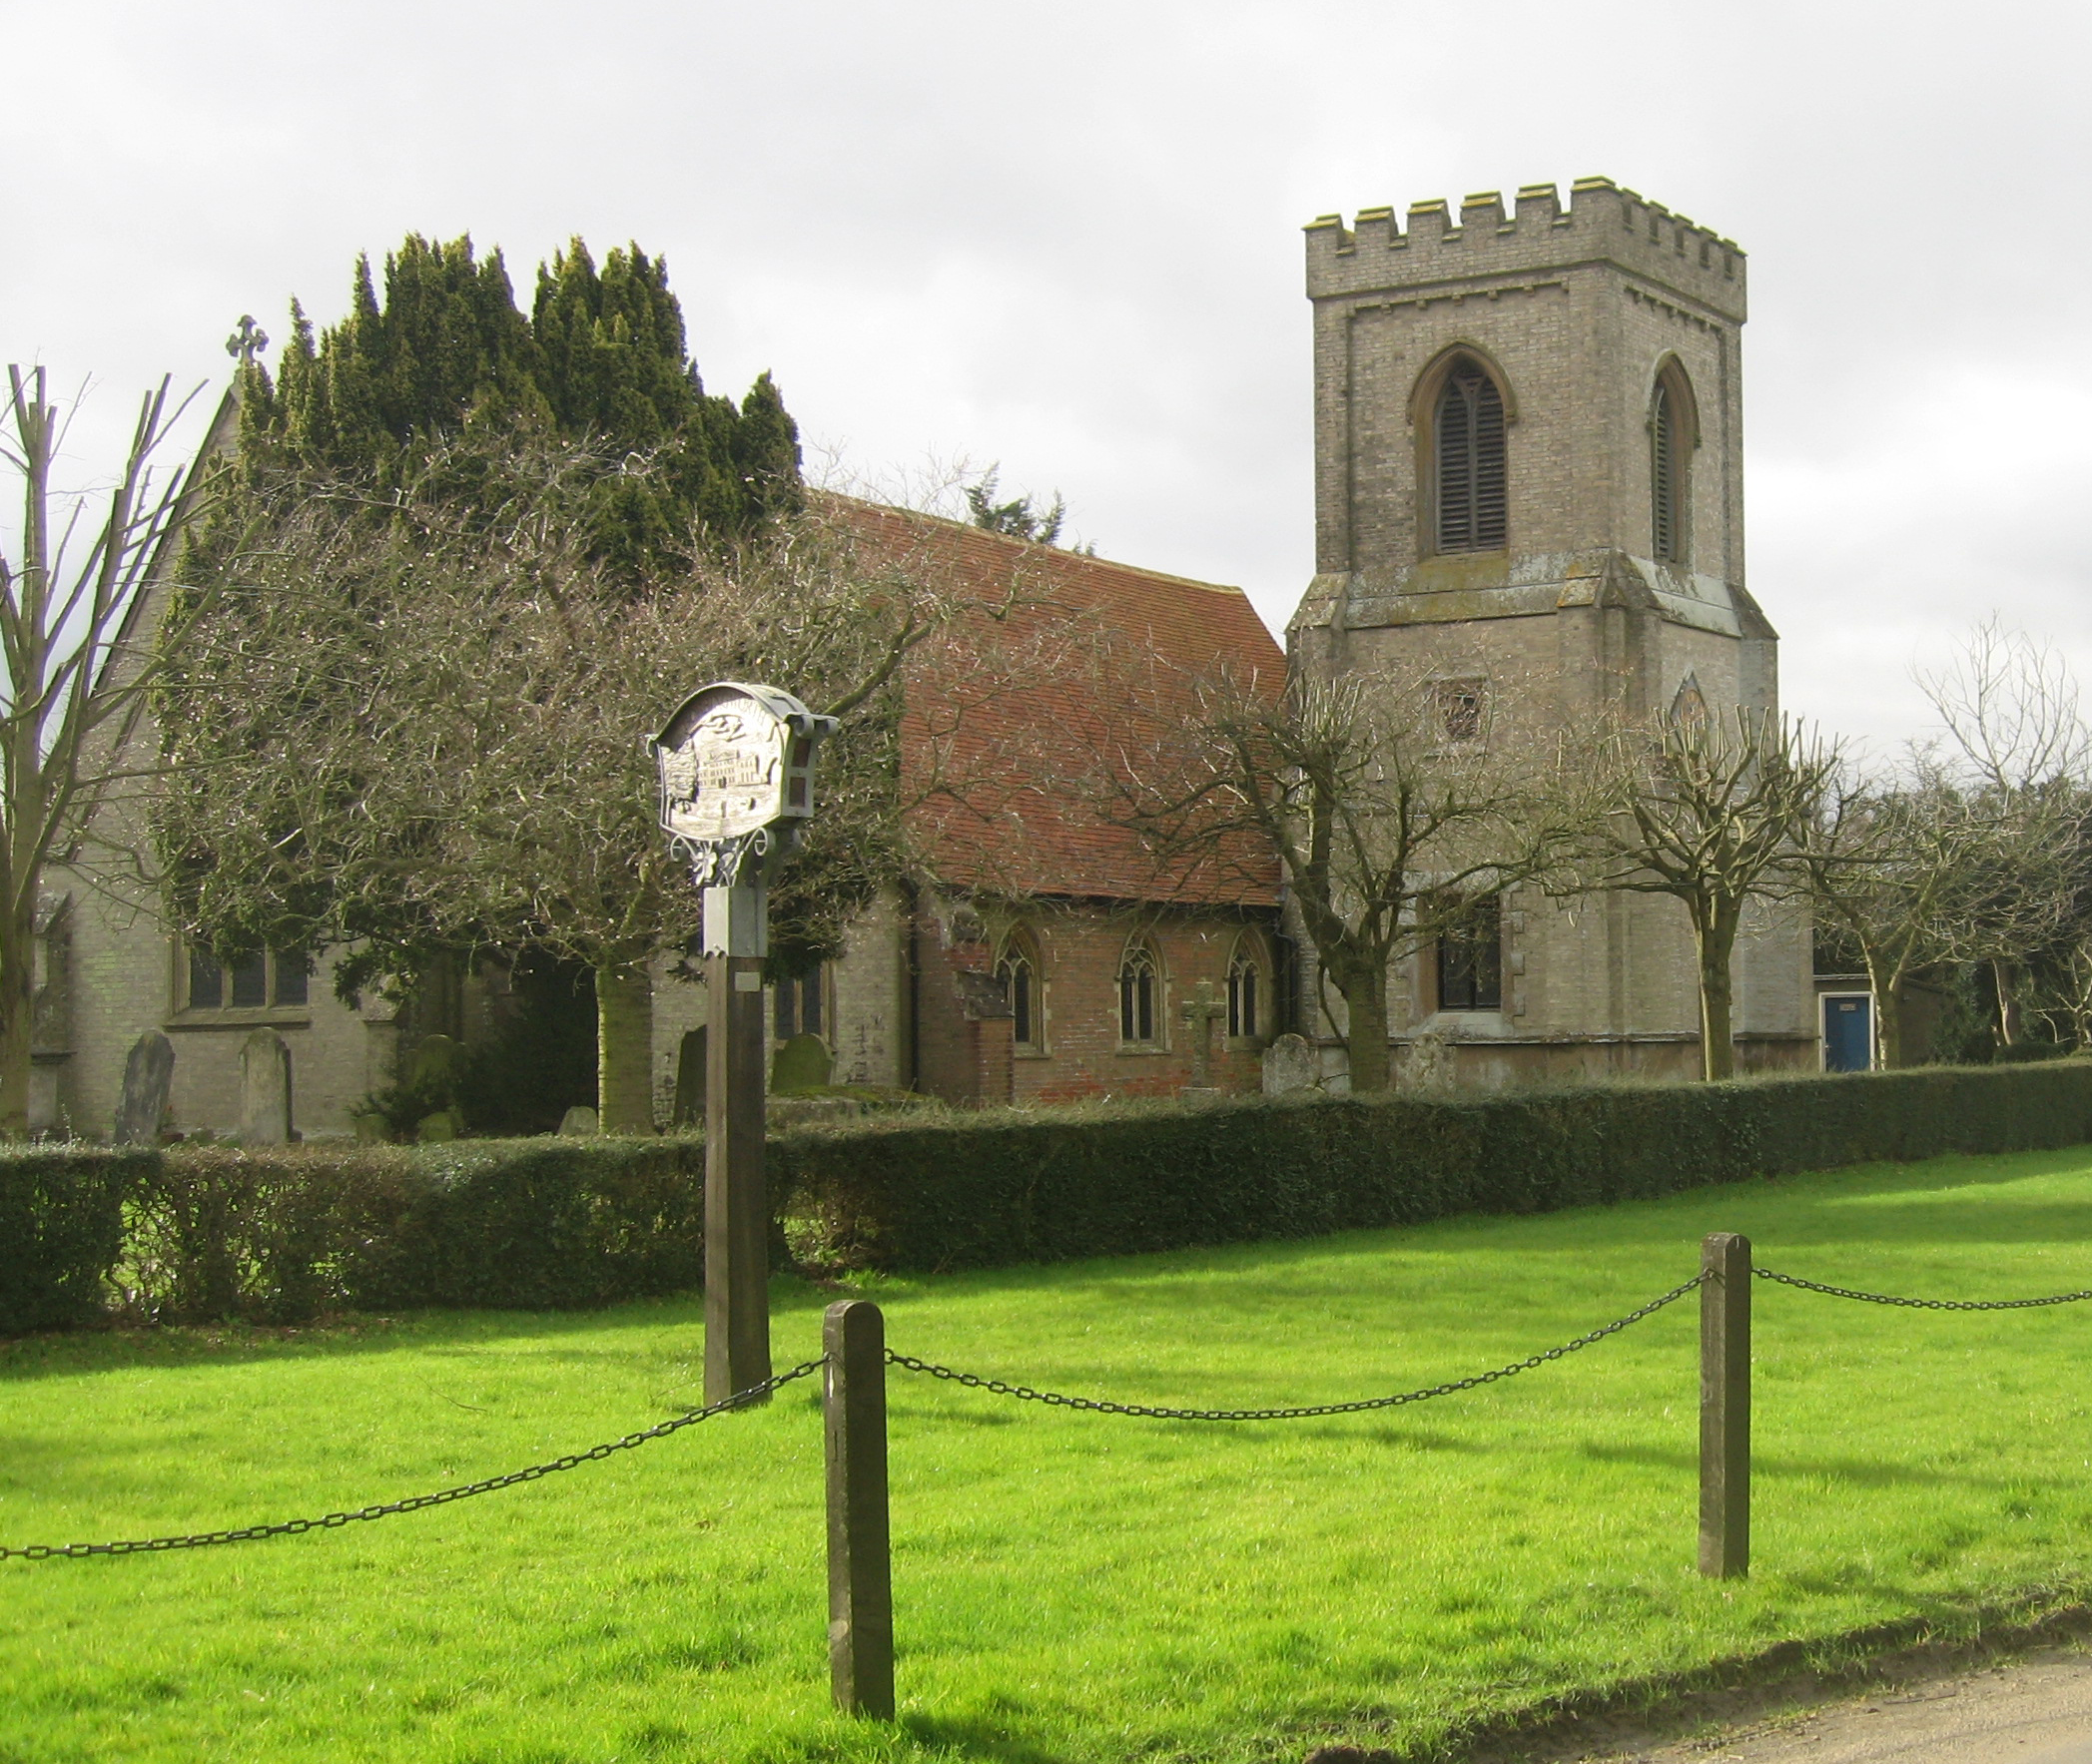 St Germain, Bobbingworth, Essex